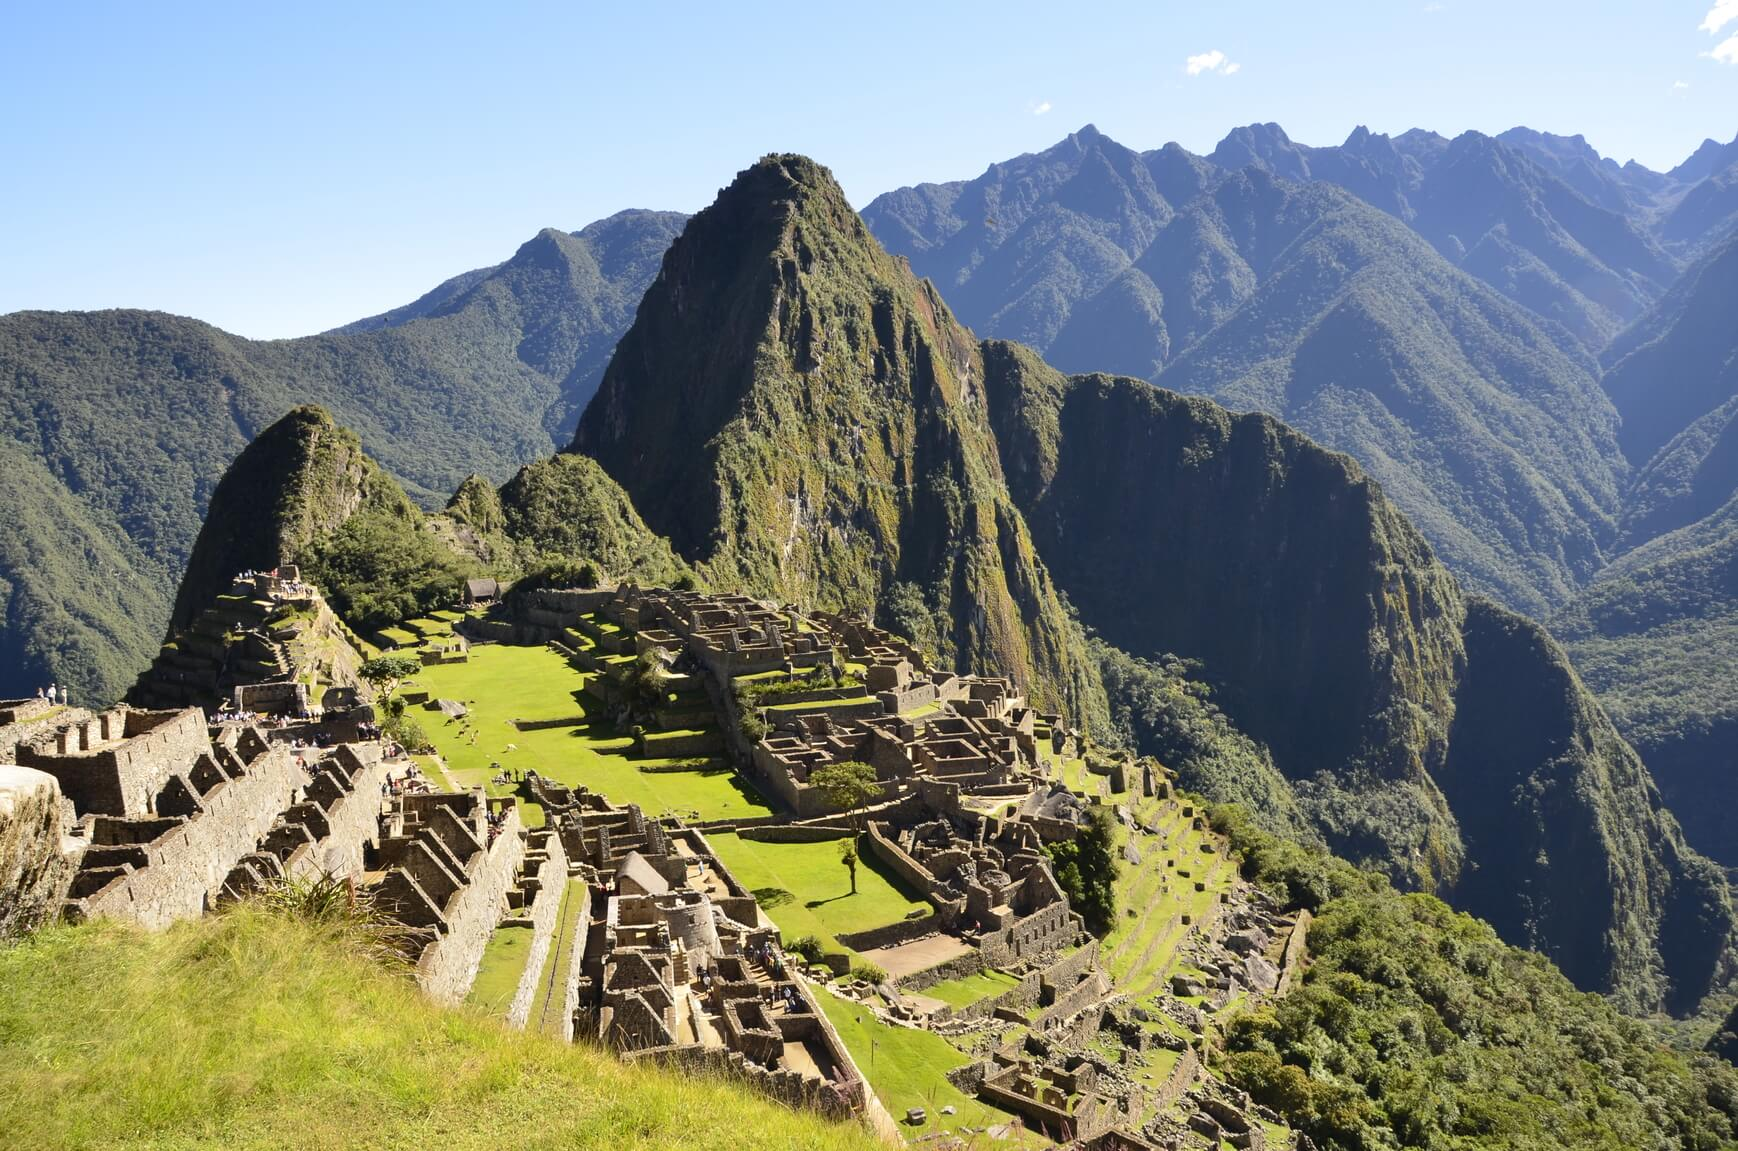 Six tourists arrested after allegedly defecating at Machu Picchu ruins